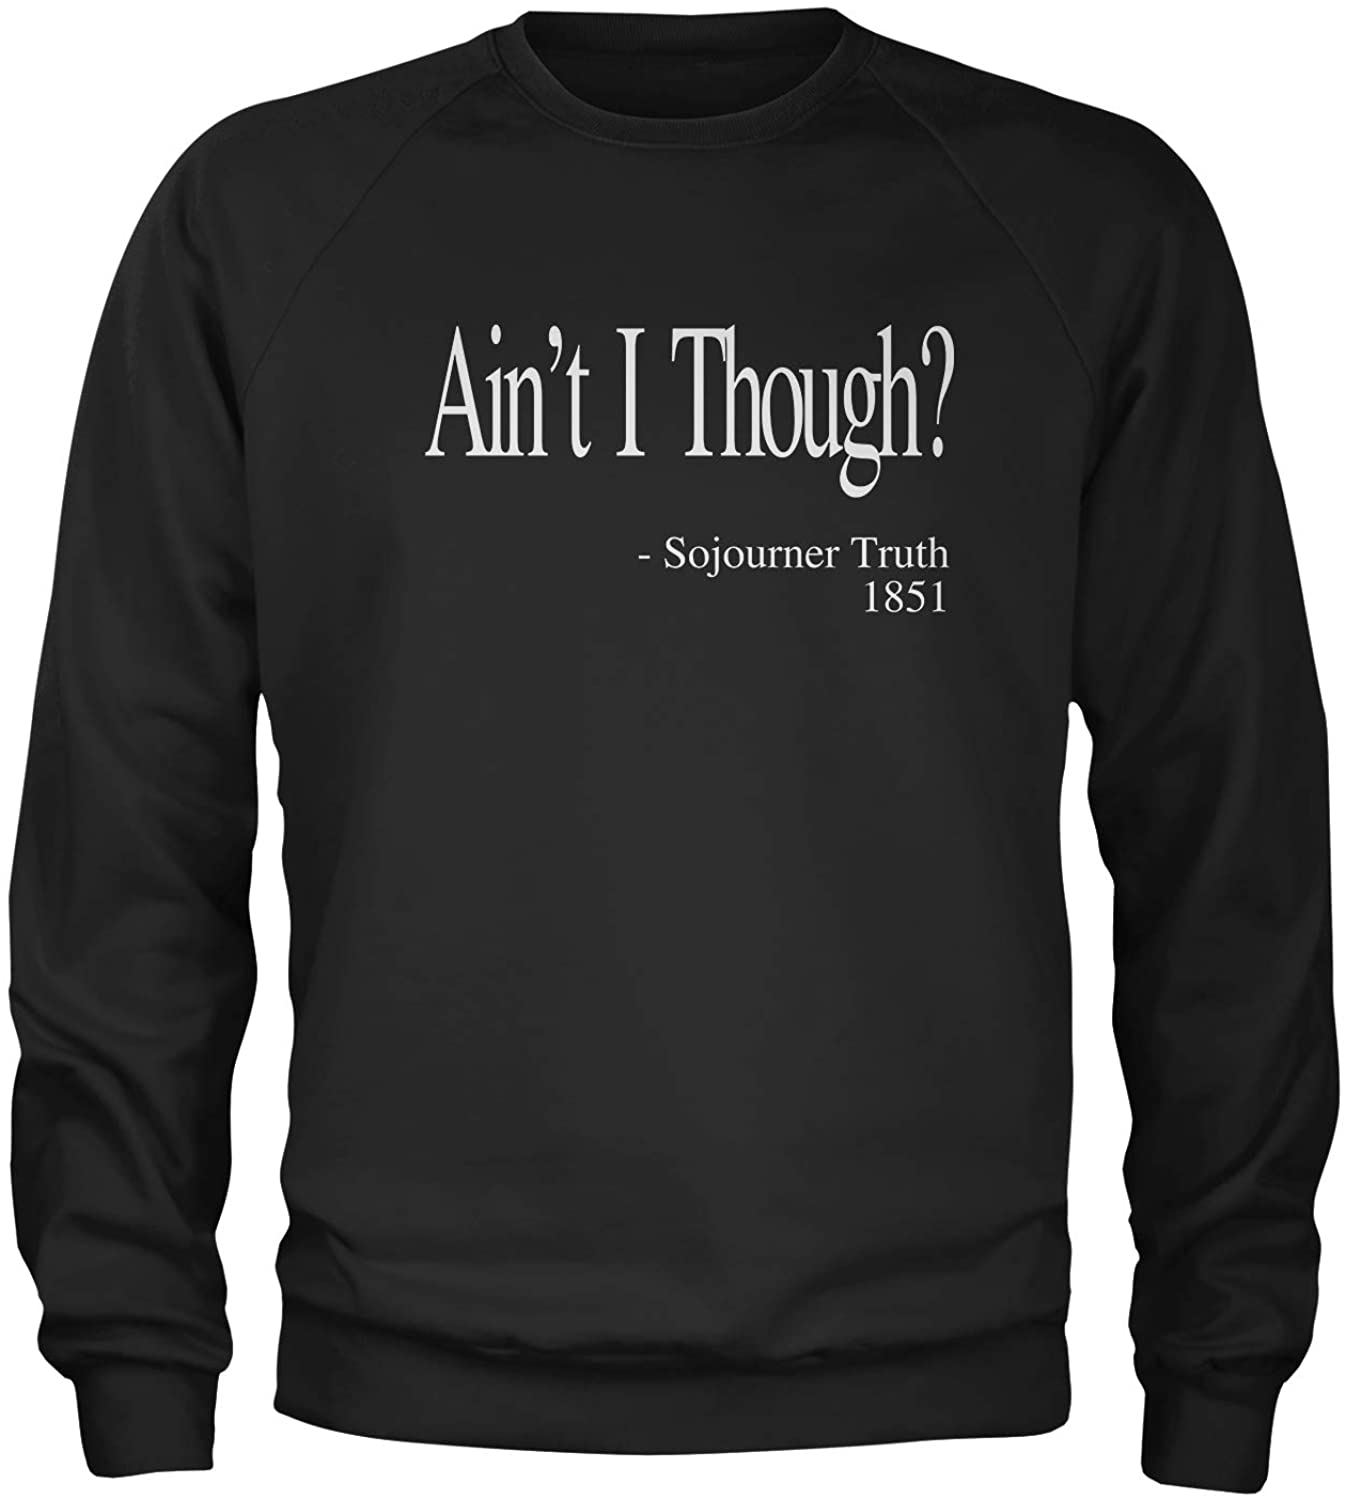 Expression Tees Ain't I Though? Sojourner Truth Crewneck Sweatshirt